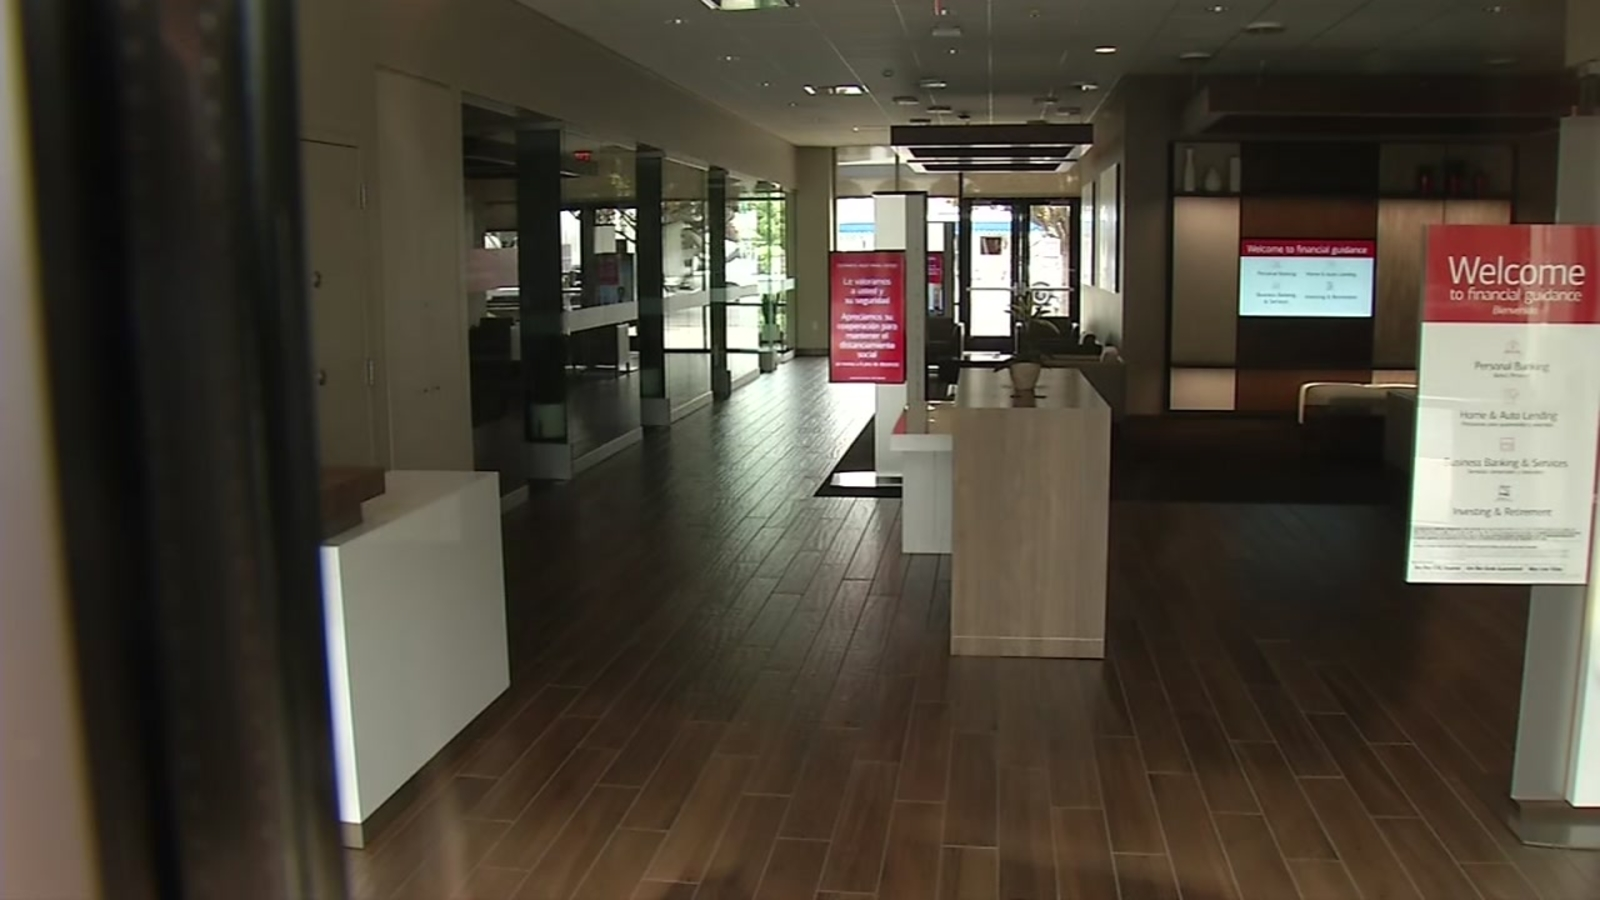 Many Bay Area banks temporarily closed, impacting customers due to COVID-19